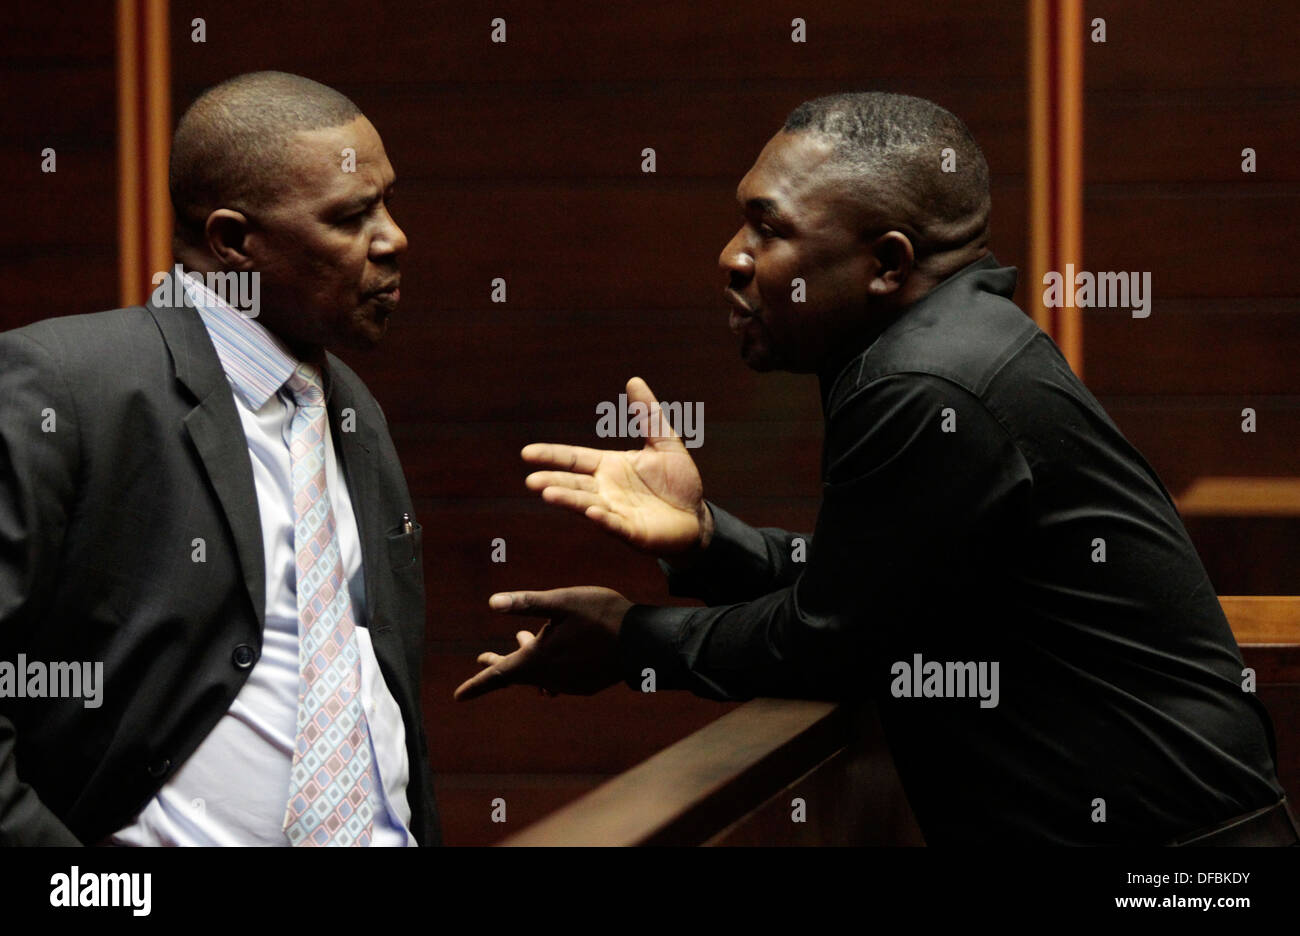 Frank Nabolisa speaks with his counsel from dock Pietermaritzburg High Court 12 October 2010 Cwele wife Minister State Security - Stock Image